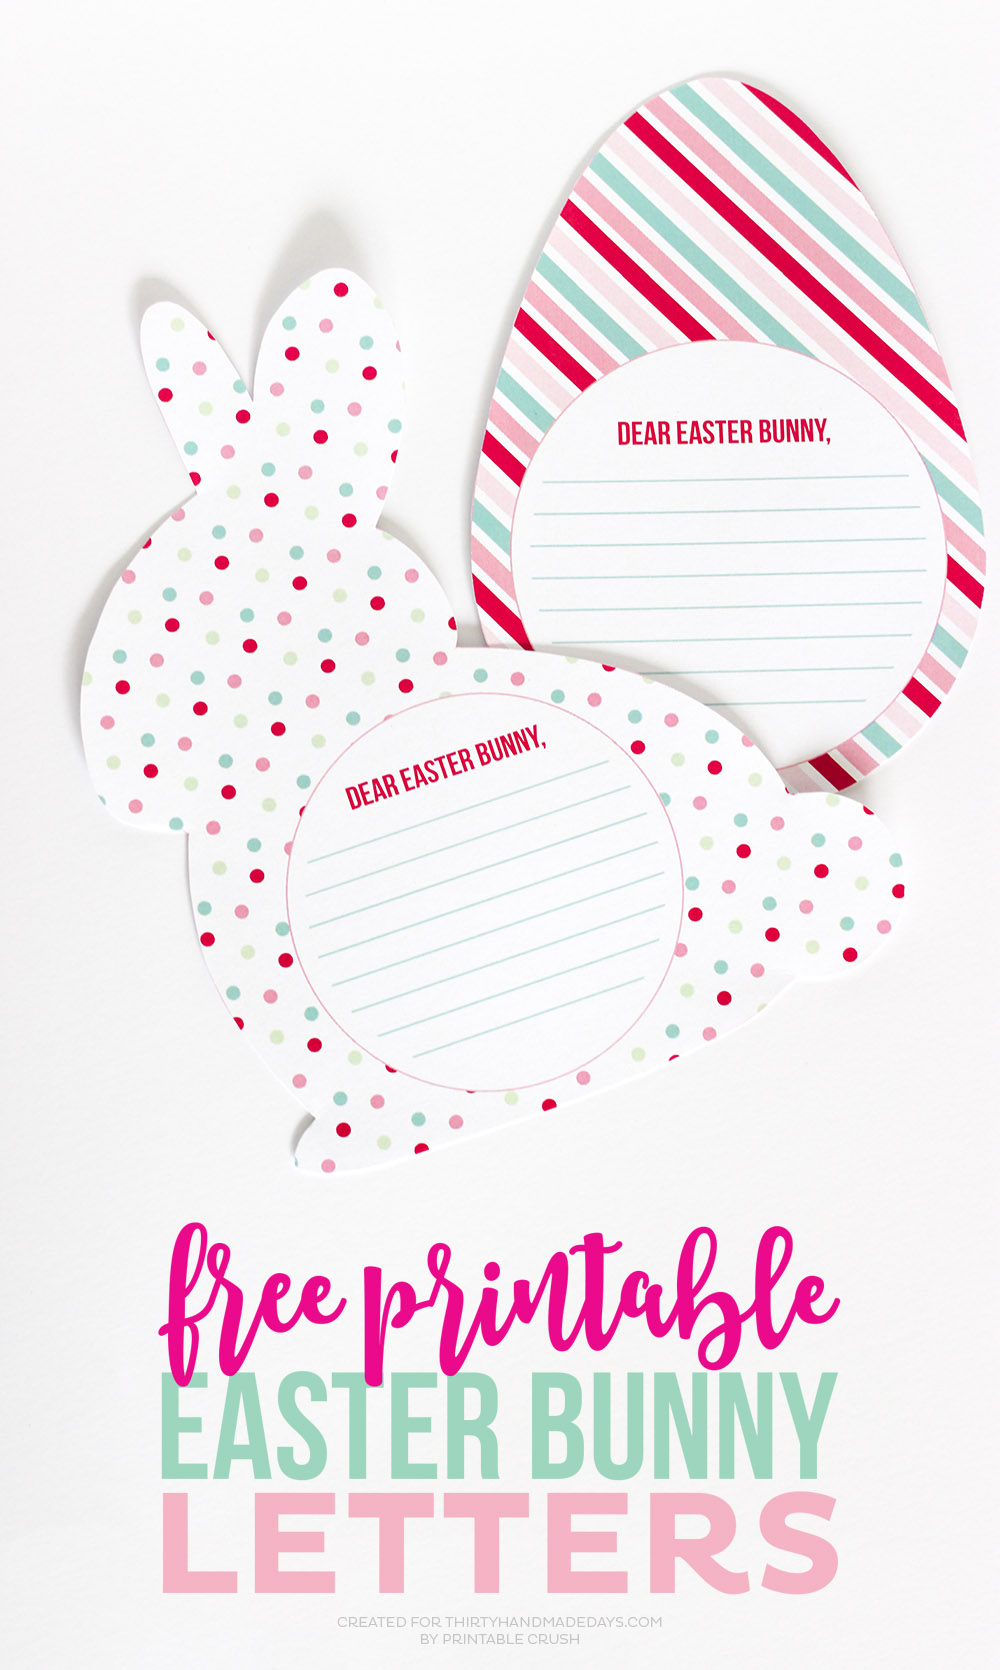 Free Printable Easter Bunny Letters - Thirty Handmade Days